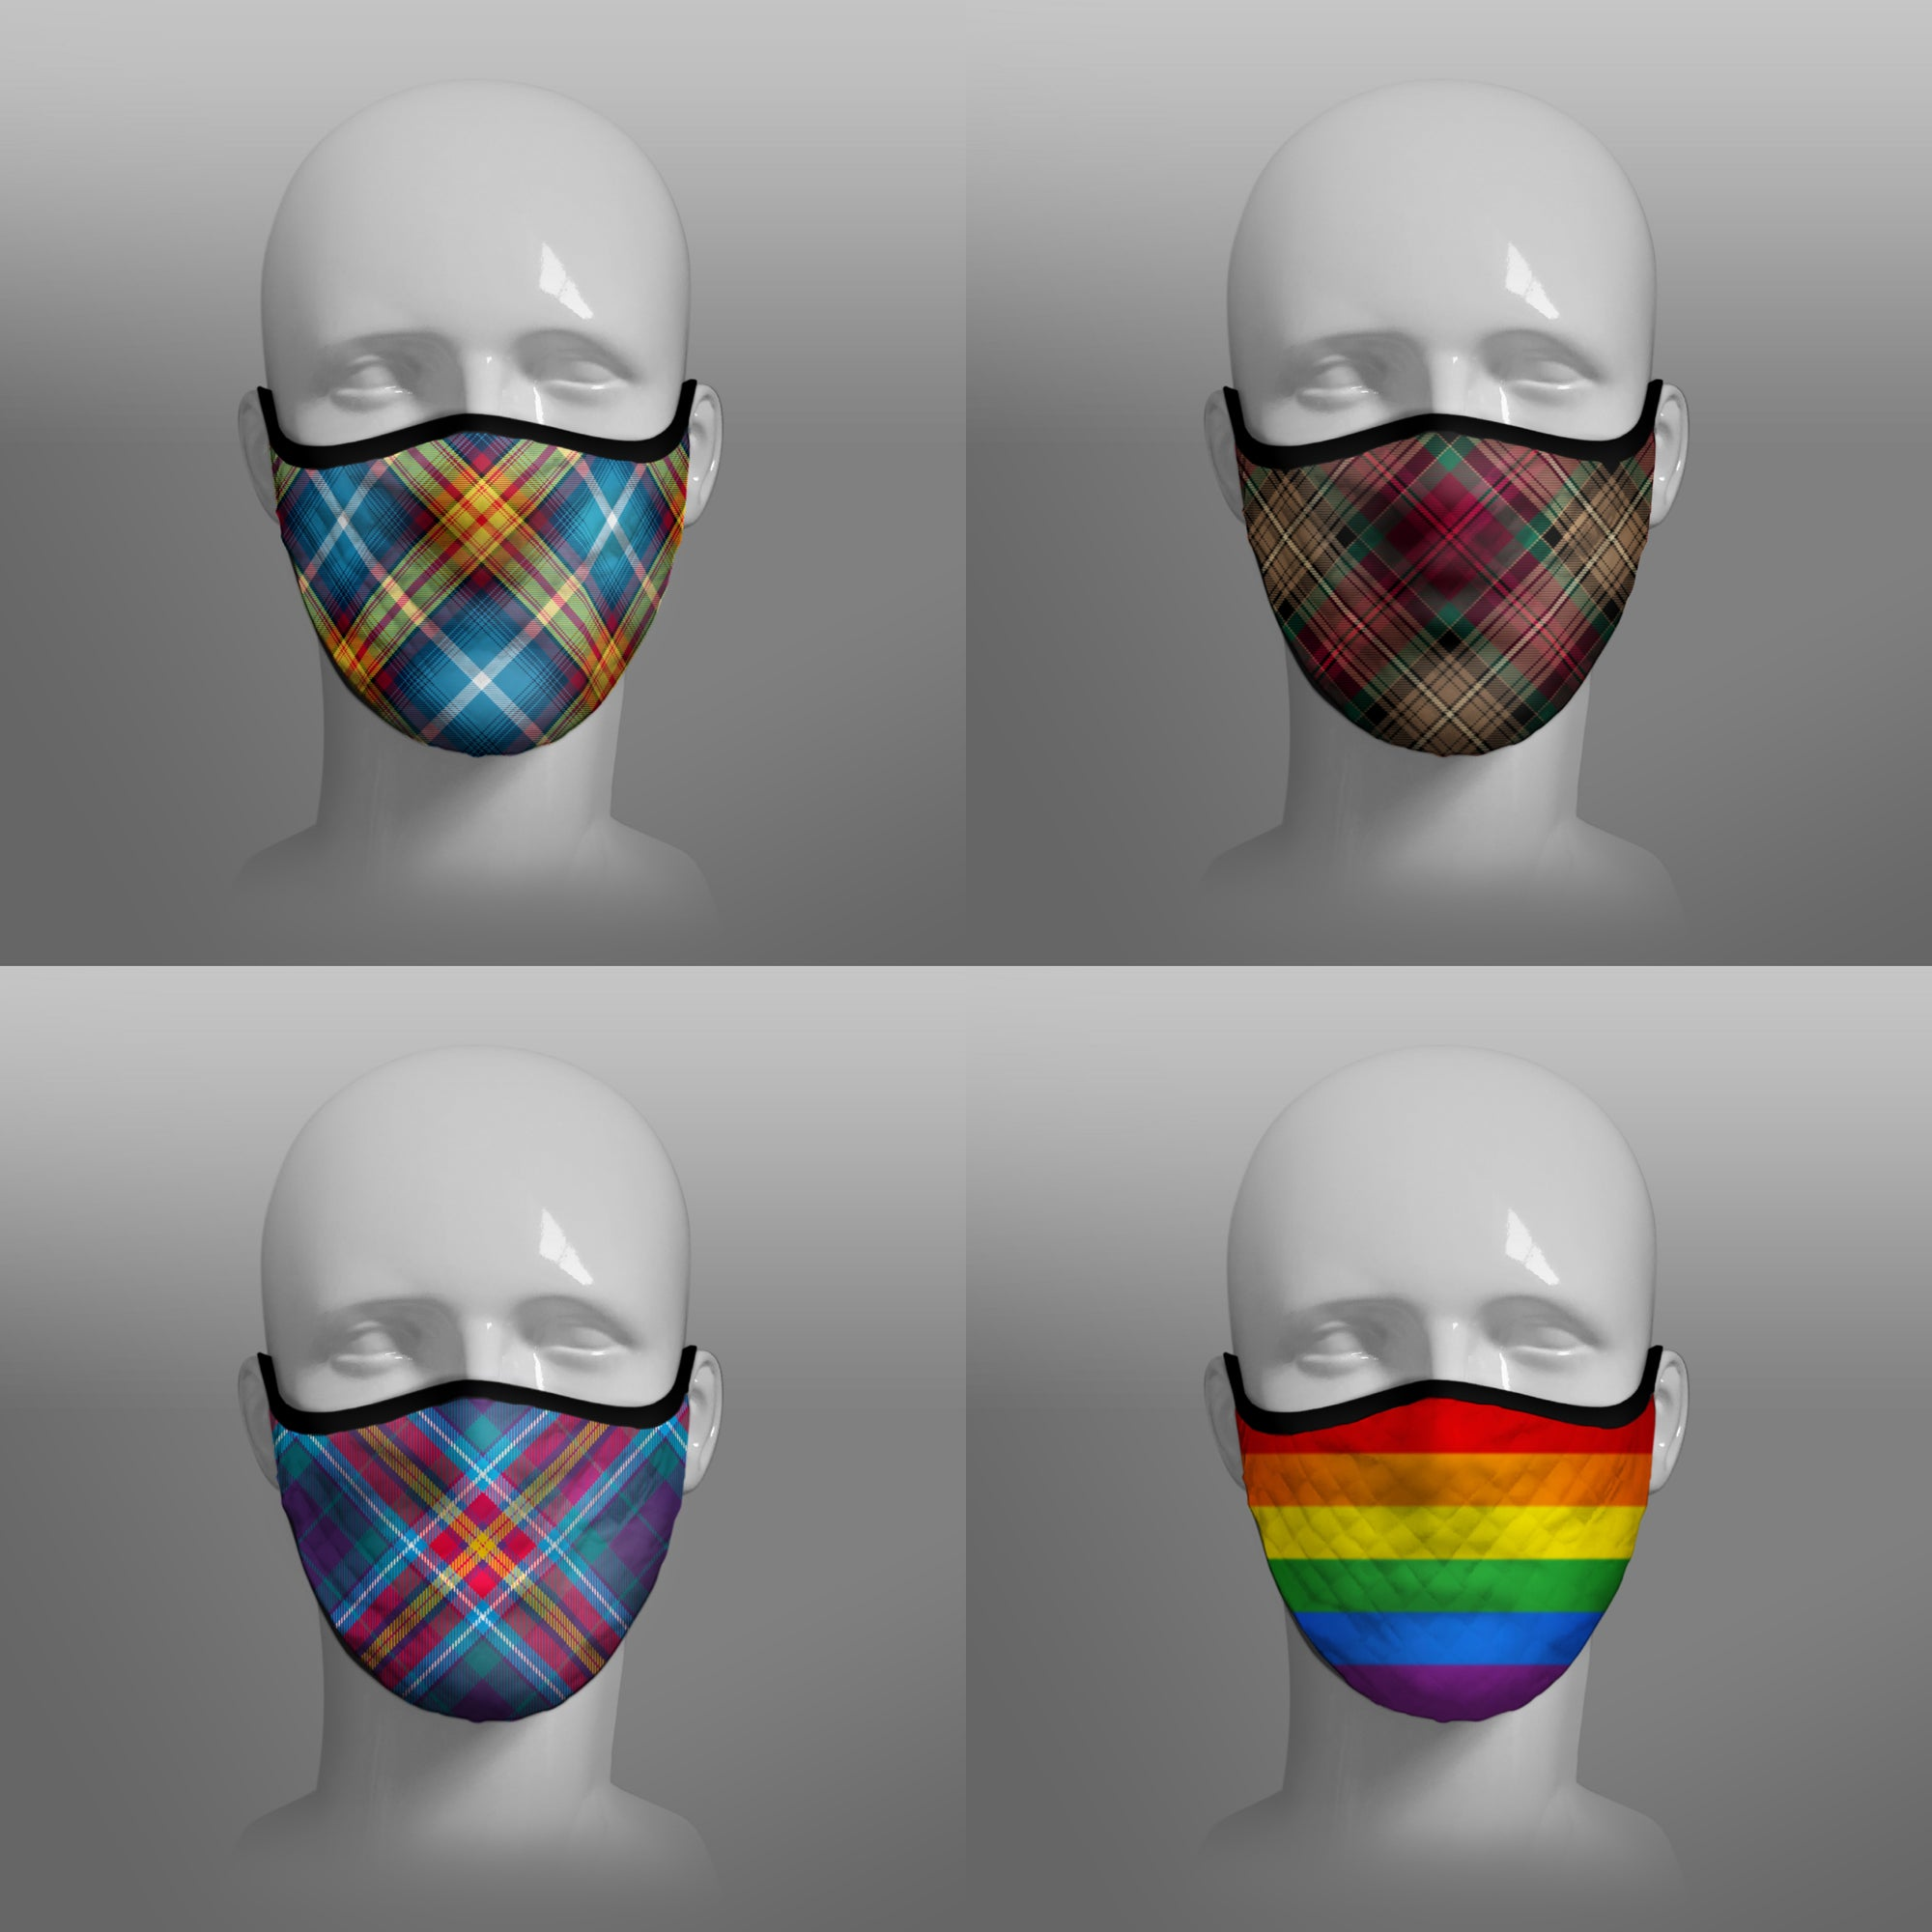 Tartan Face coverings contoured face masks by Steven Patrick Sim the Tartan Artisan - including Declaration of Scottish Independence - Arbroath 6th April 1320 - Gay Pride Rainbow Flag - YES Alba Gu Brath - four pack combo - extra large